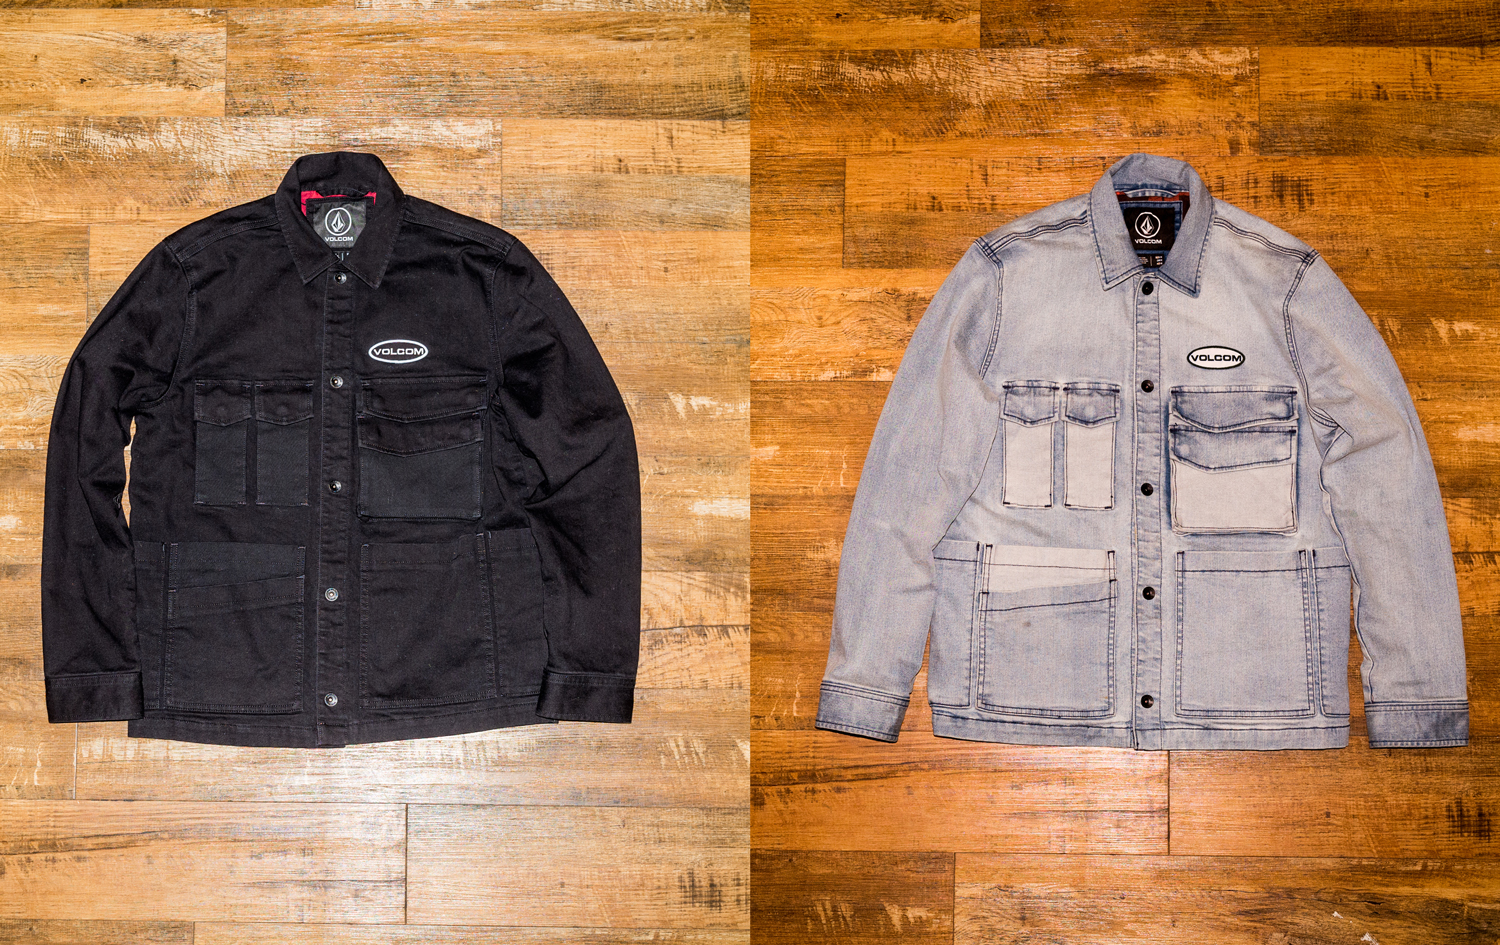 volcompartment jacket